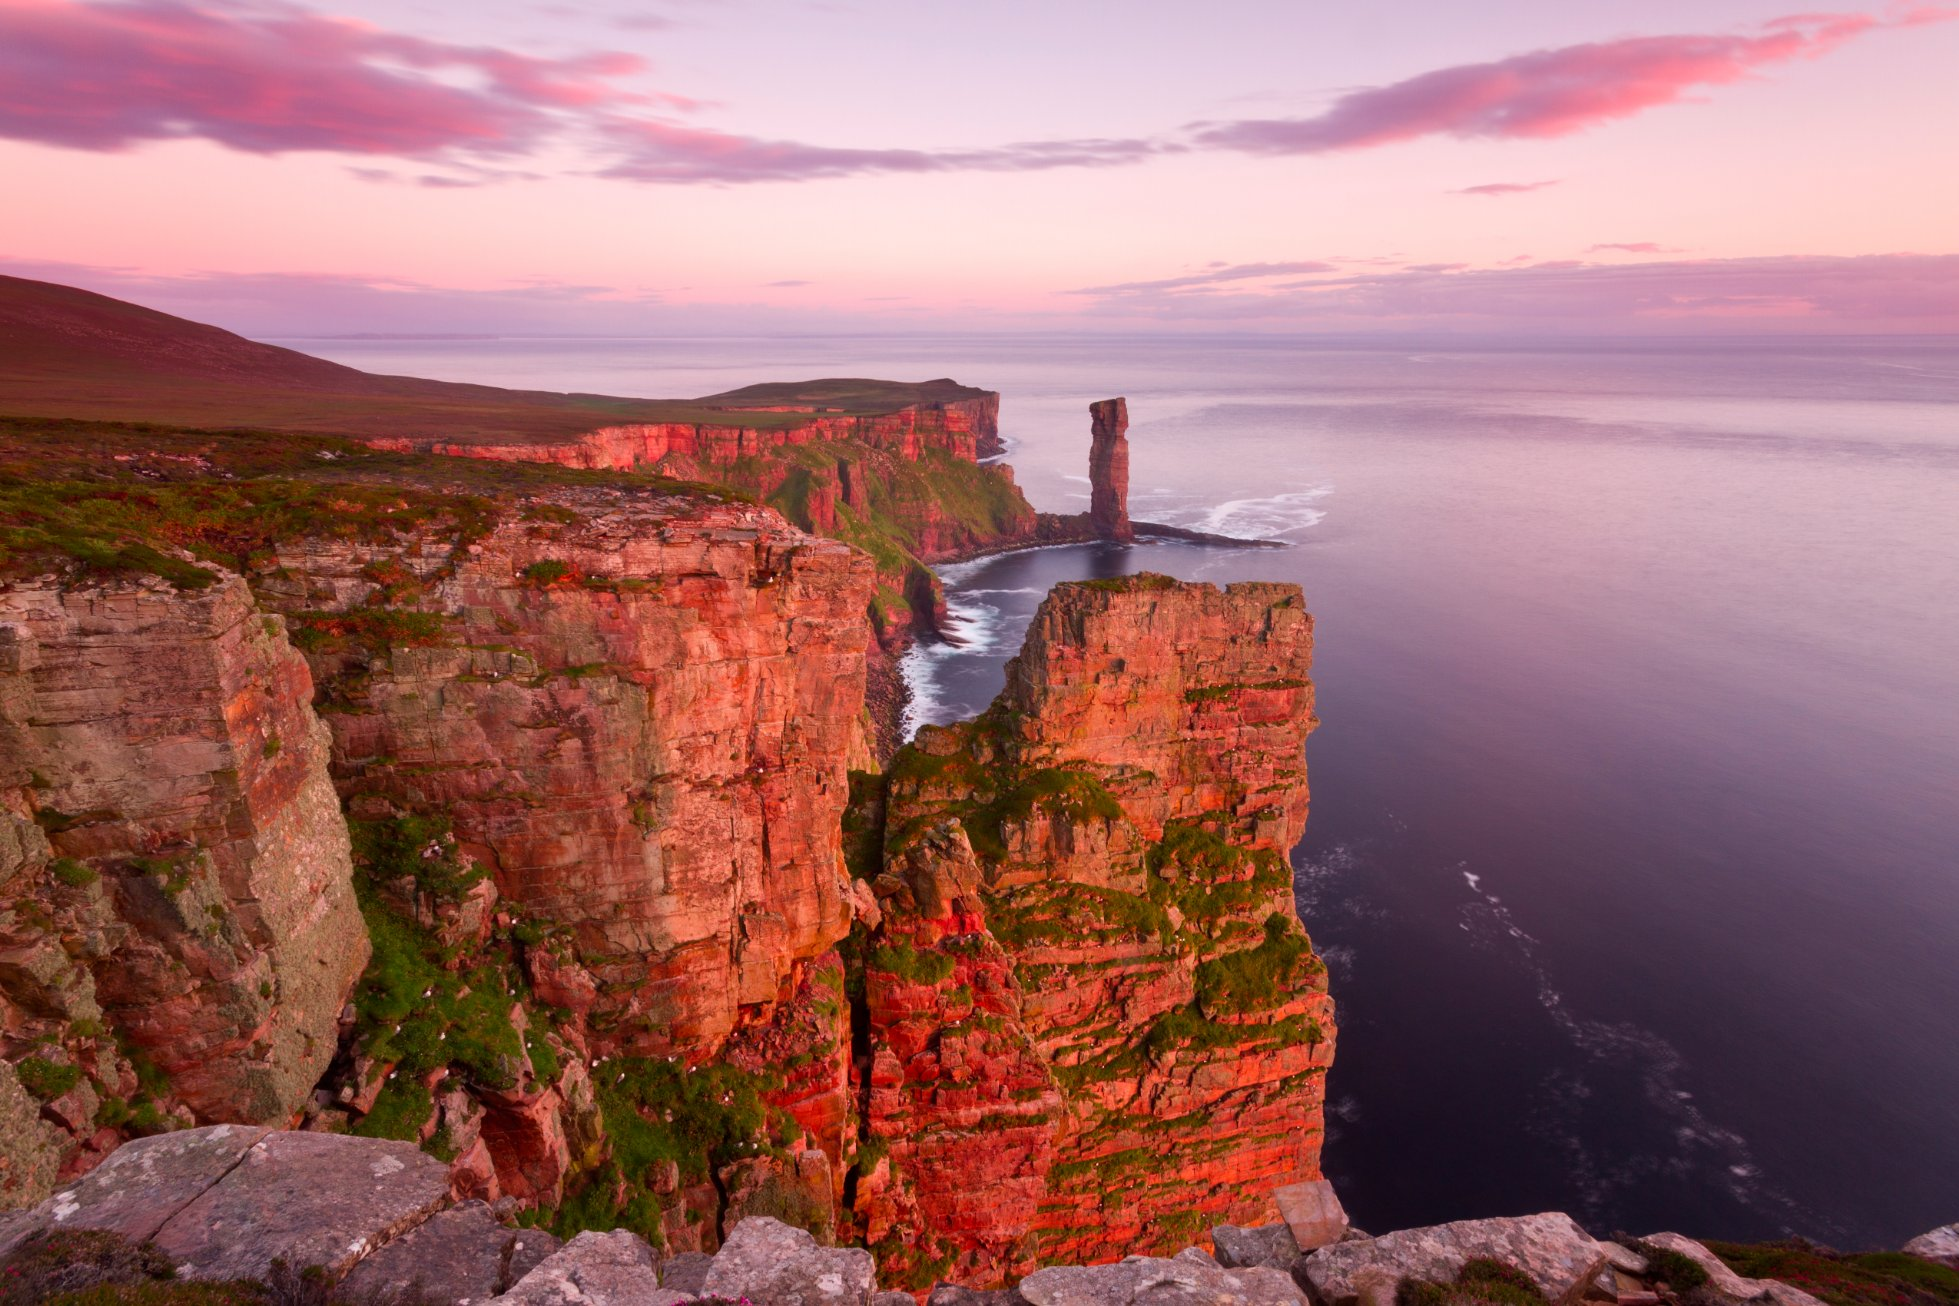 View towards the Old Man of Hoy, Orkney - image by Mark Ferguson